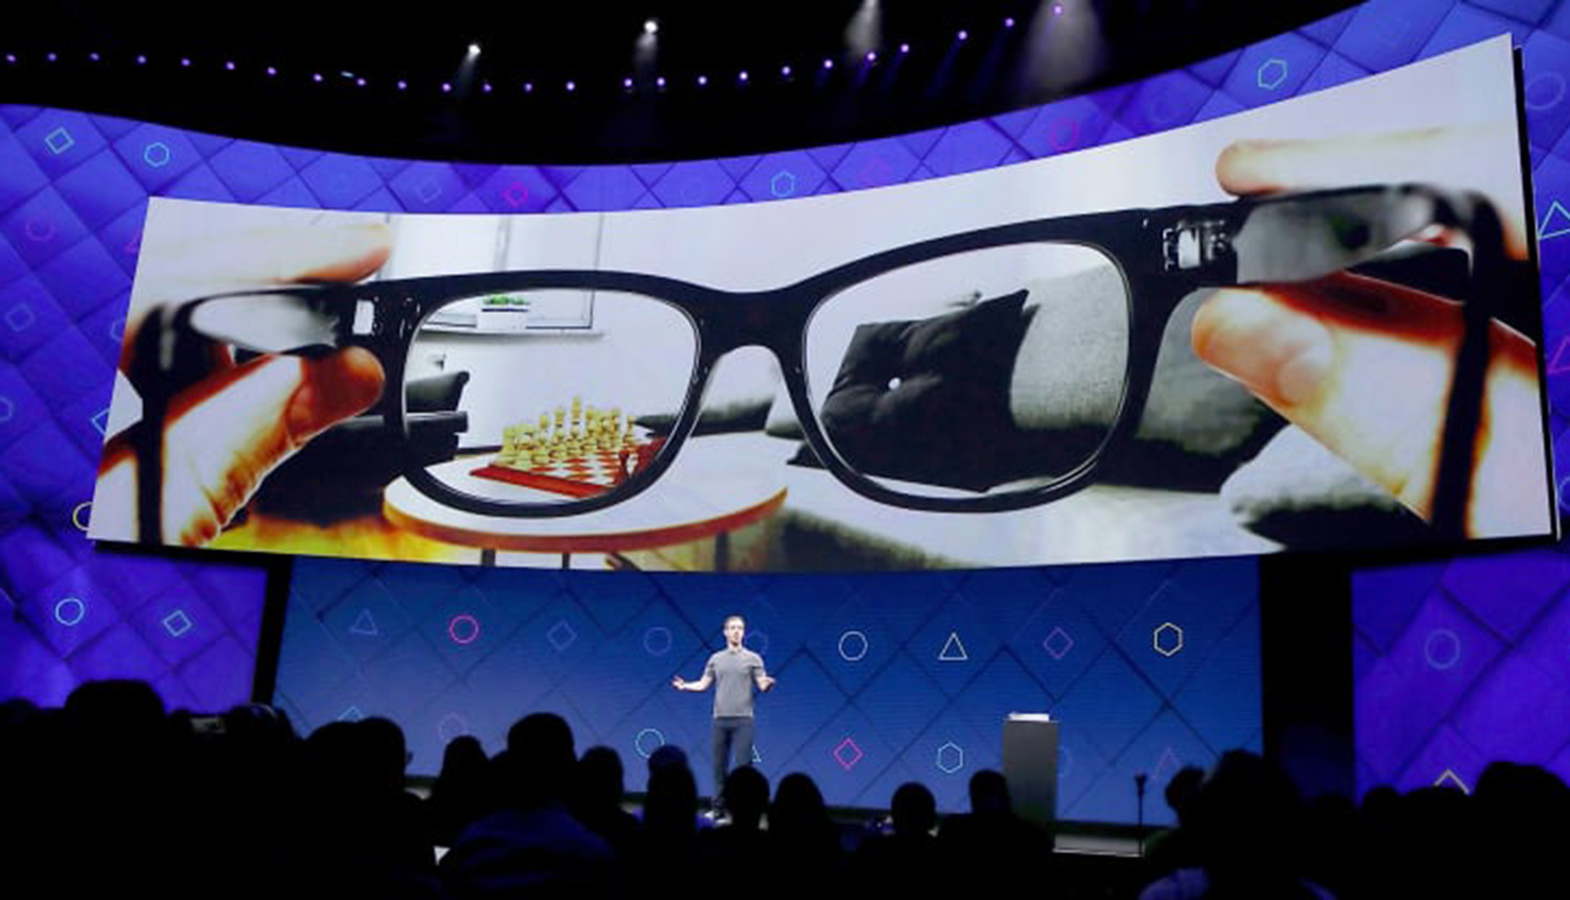 Facebook To Release Smart Glasses With Manufacturer Ray-ban   List23:  Latest U.S. News & Breaking World News